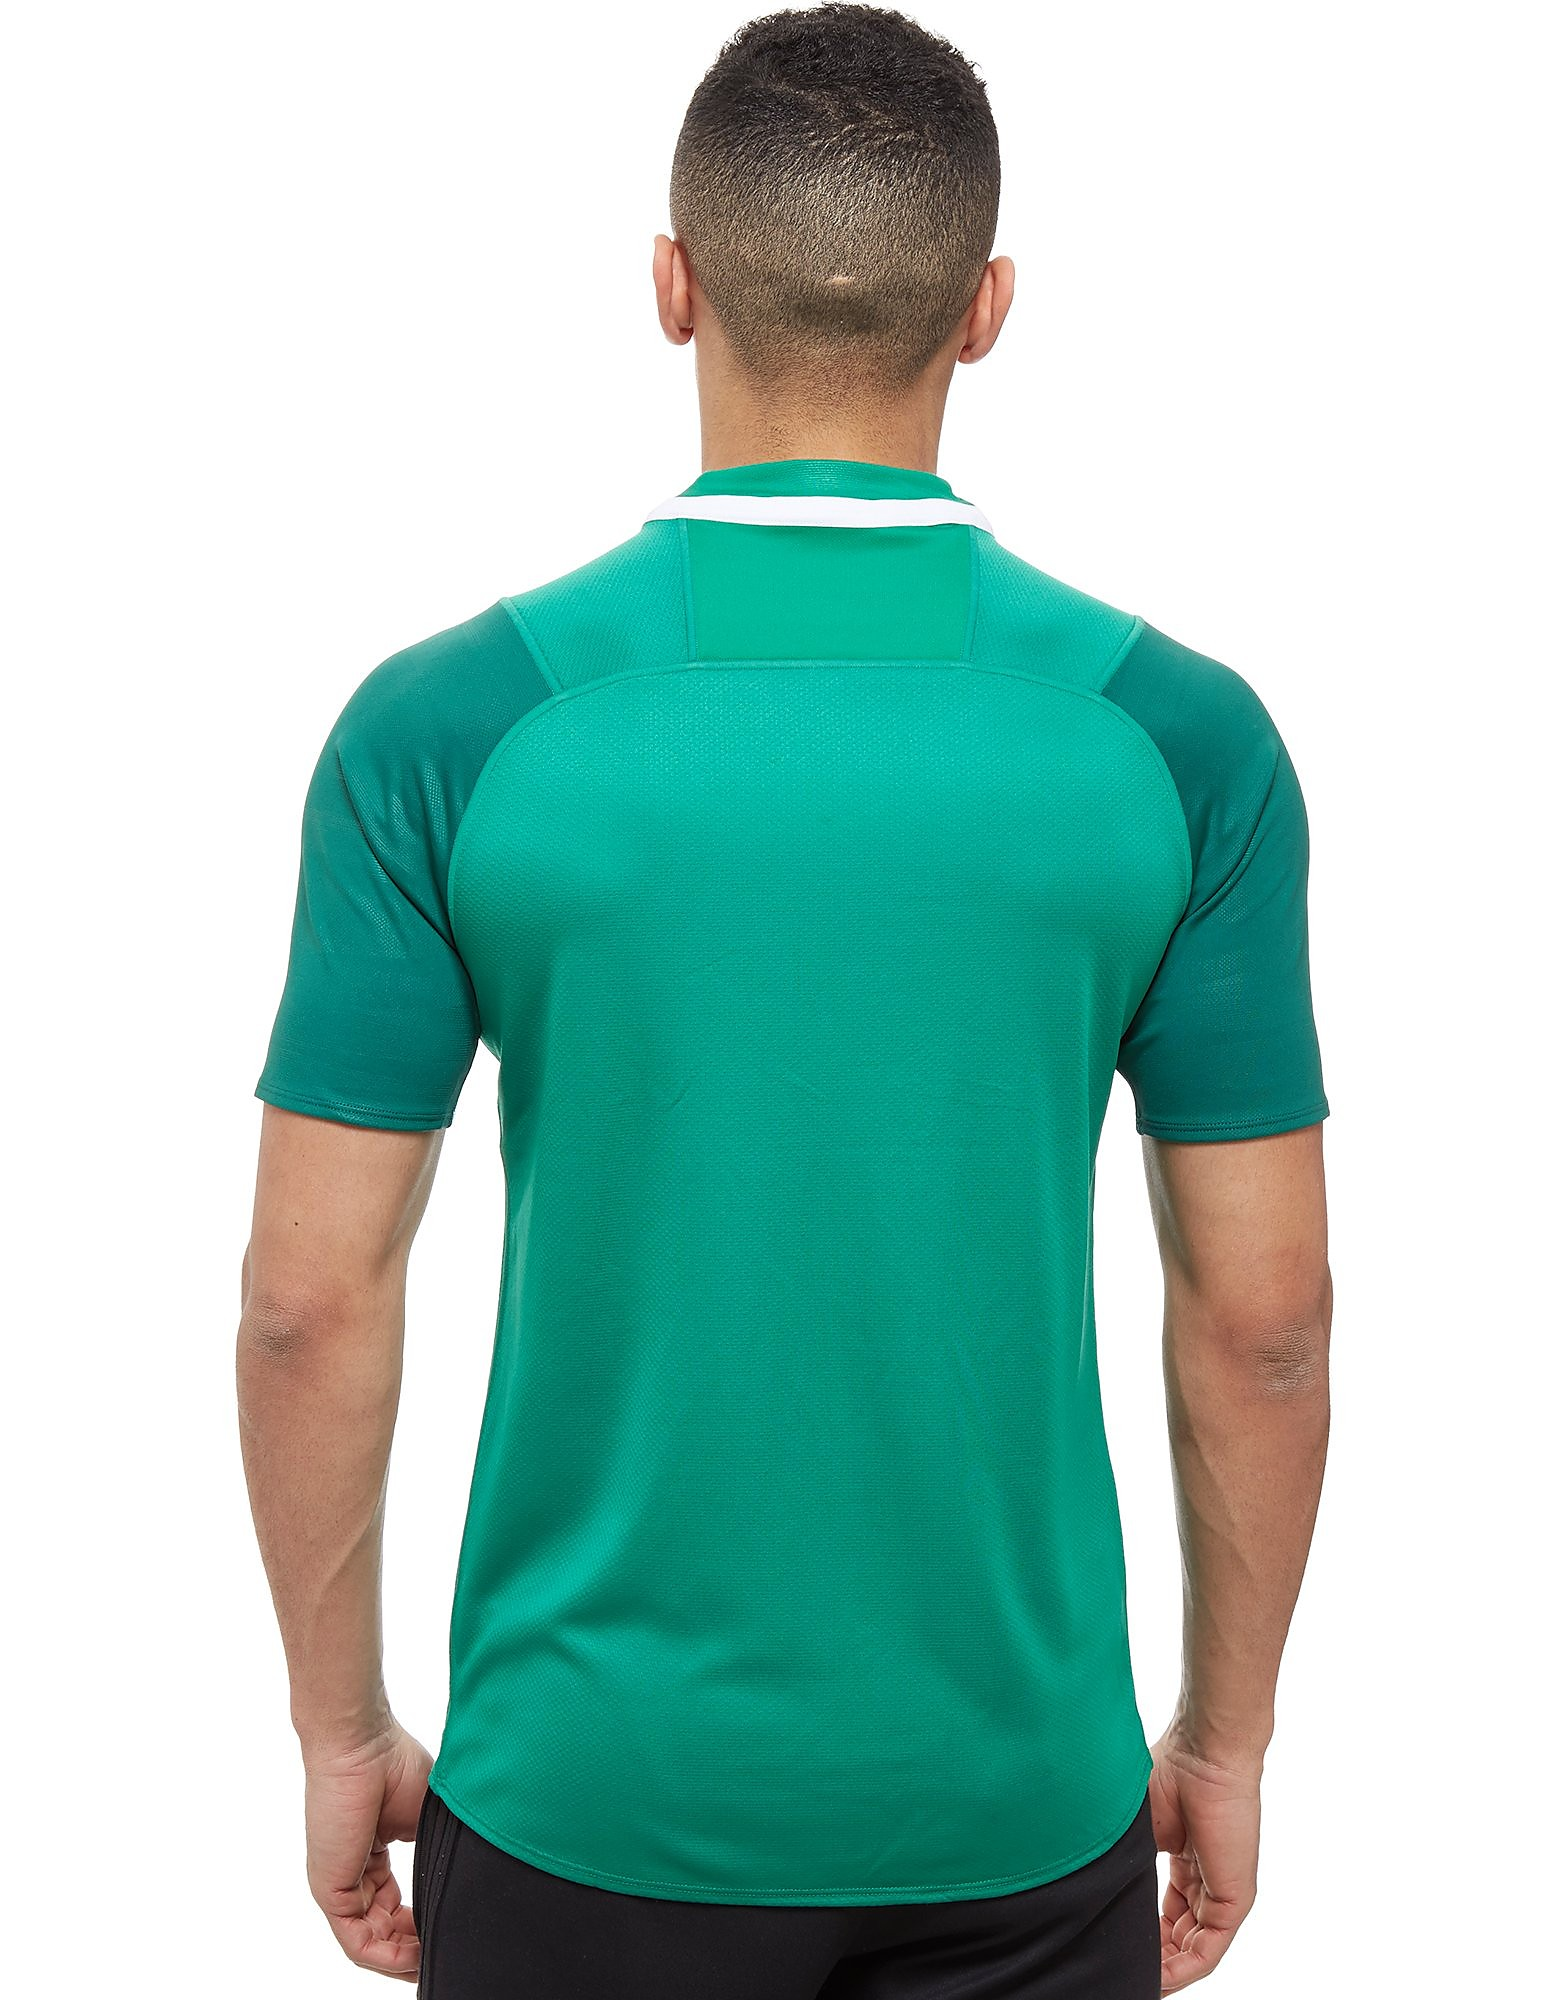 Canterbury Ireland RFU 2017 Home Player Shirt